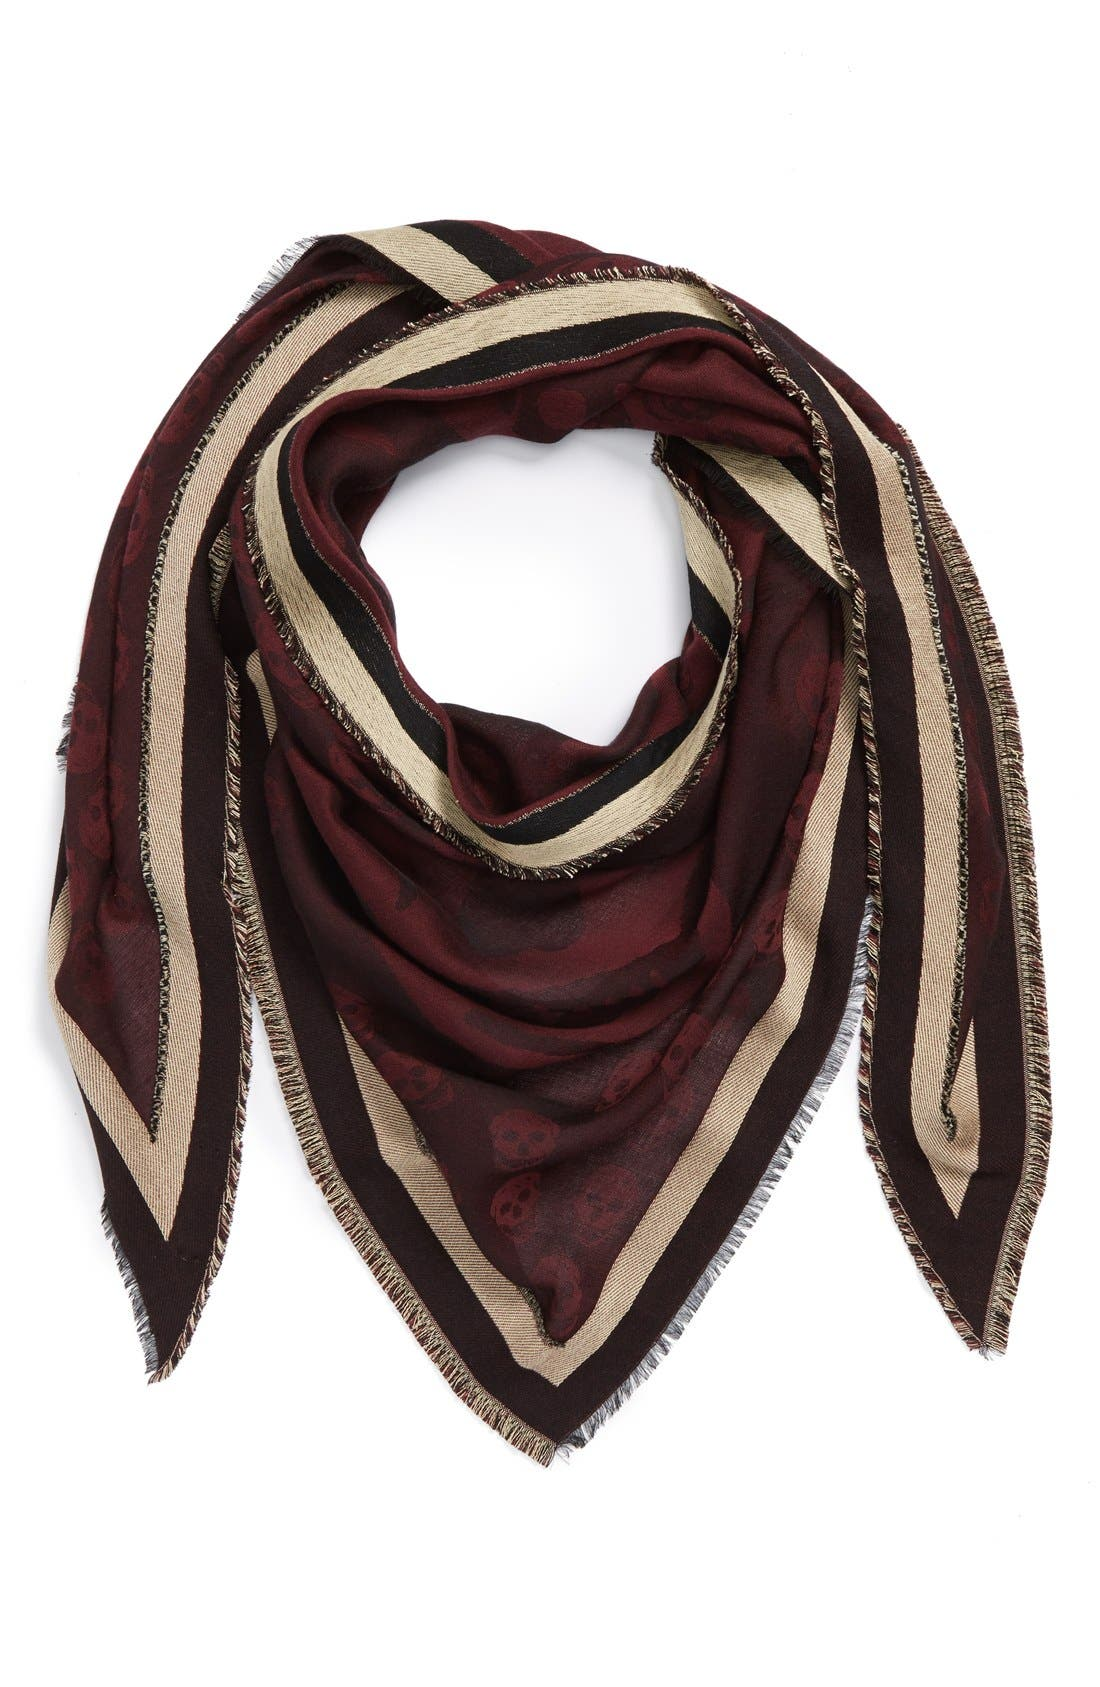 Main Image - Alexander McQueen Skull Print Triangle Scarf